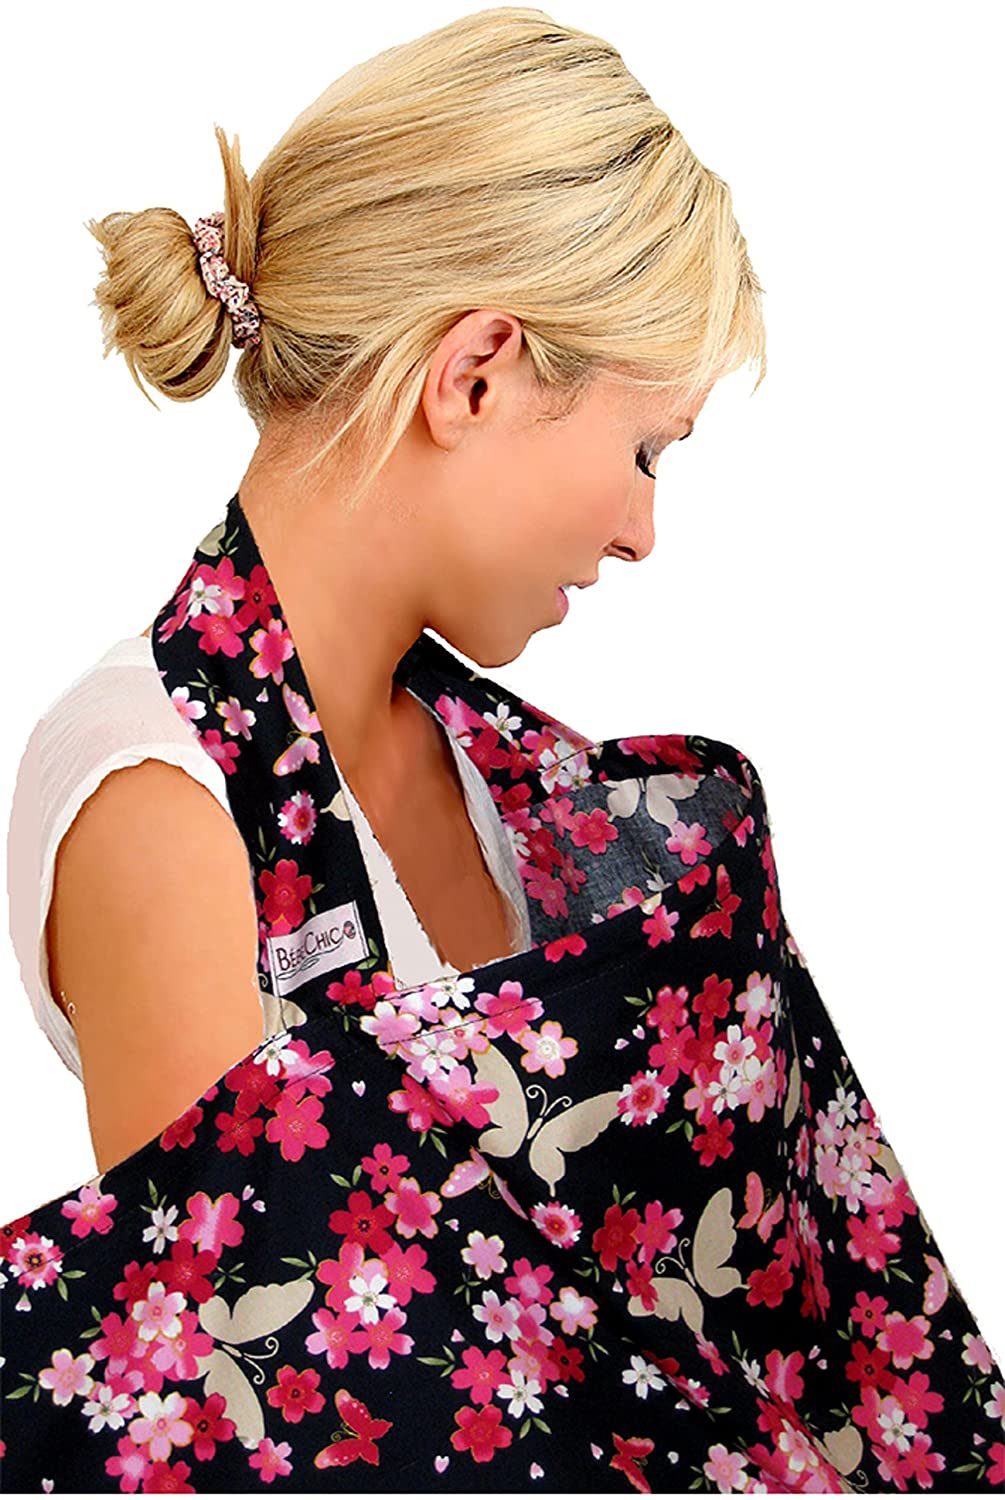 BebeChic.UK * Top Quality Oeko-Tex® Certified 100% Cotton * Breastfeeding Covers * Boned Nursing Tops - with Storage Bag - butterfly floral BebeChic Limited